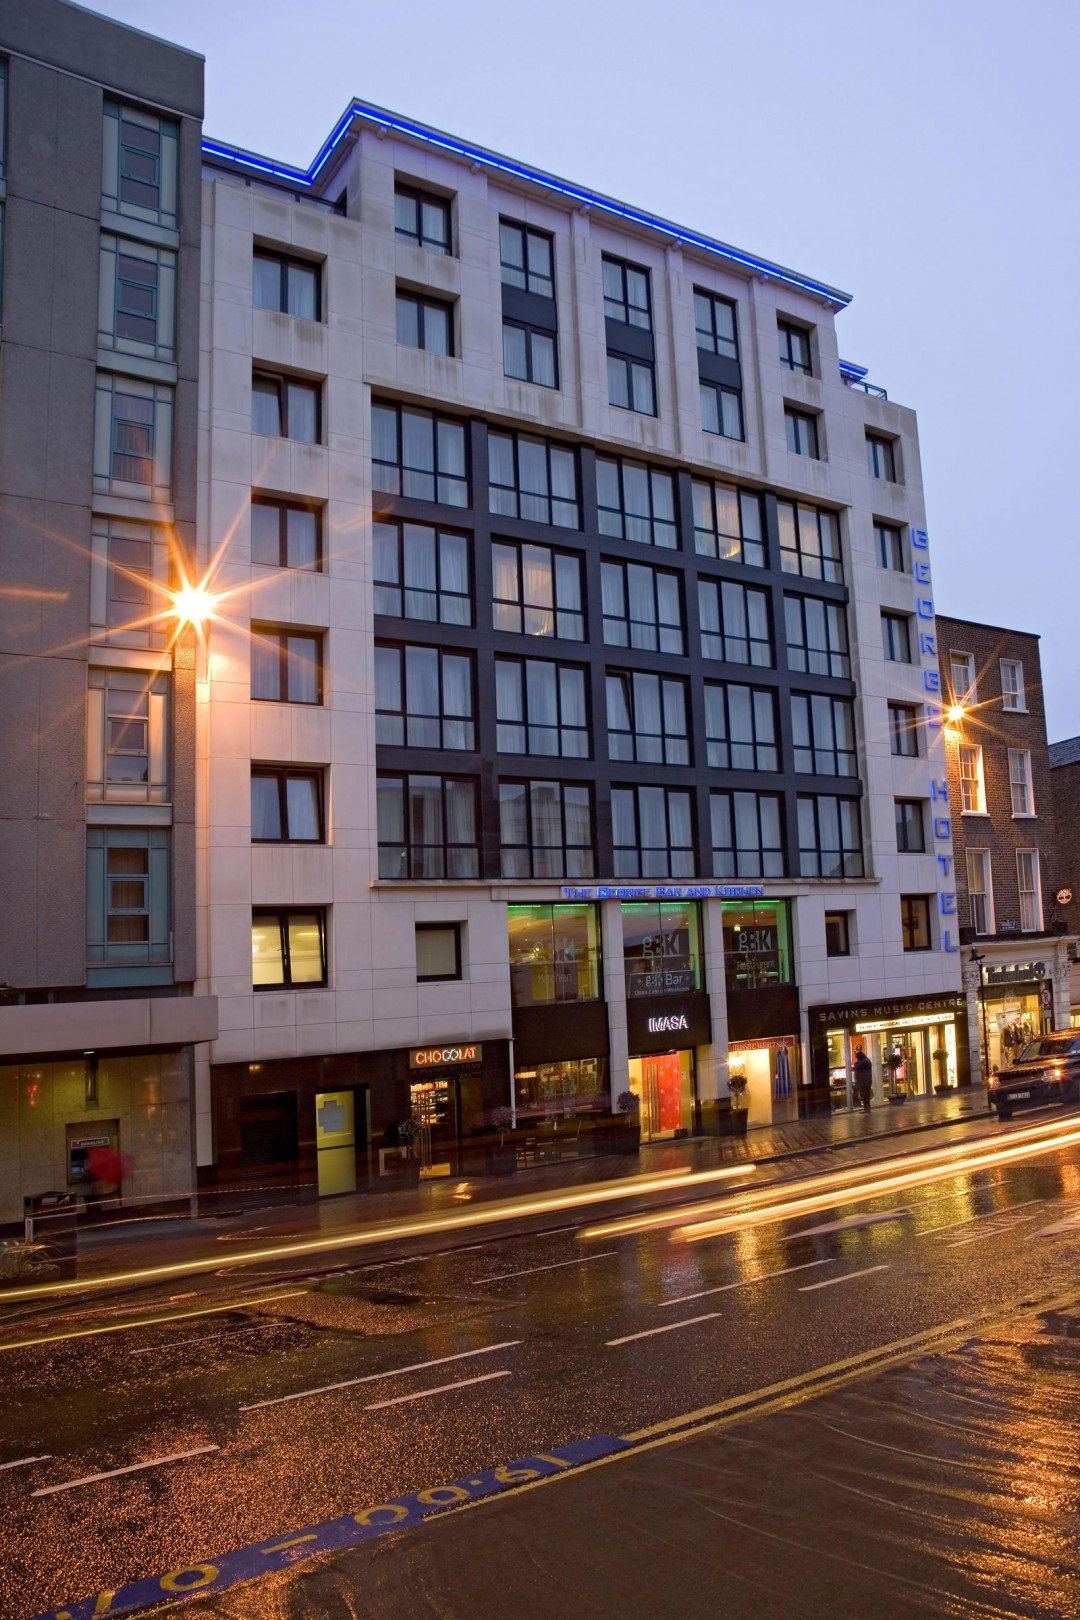 The George Boutique Hotel, Limerick